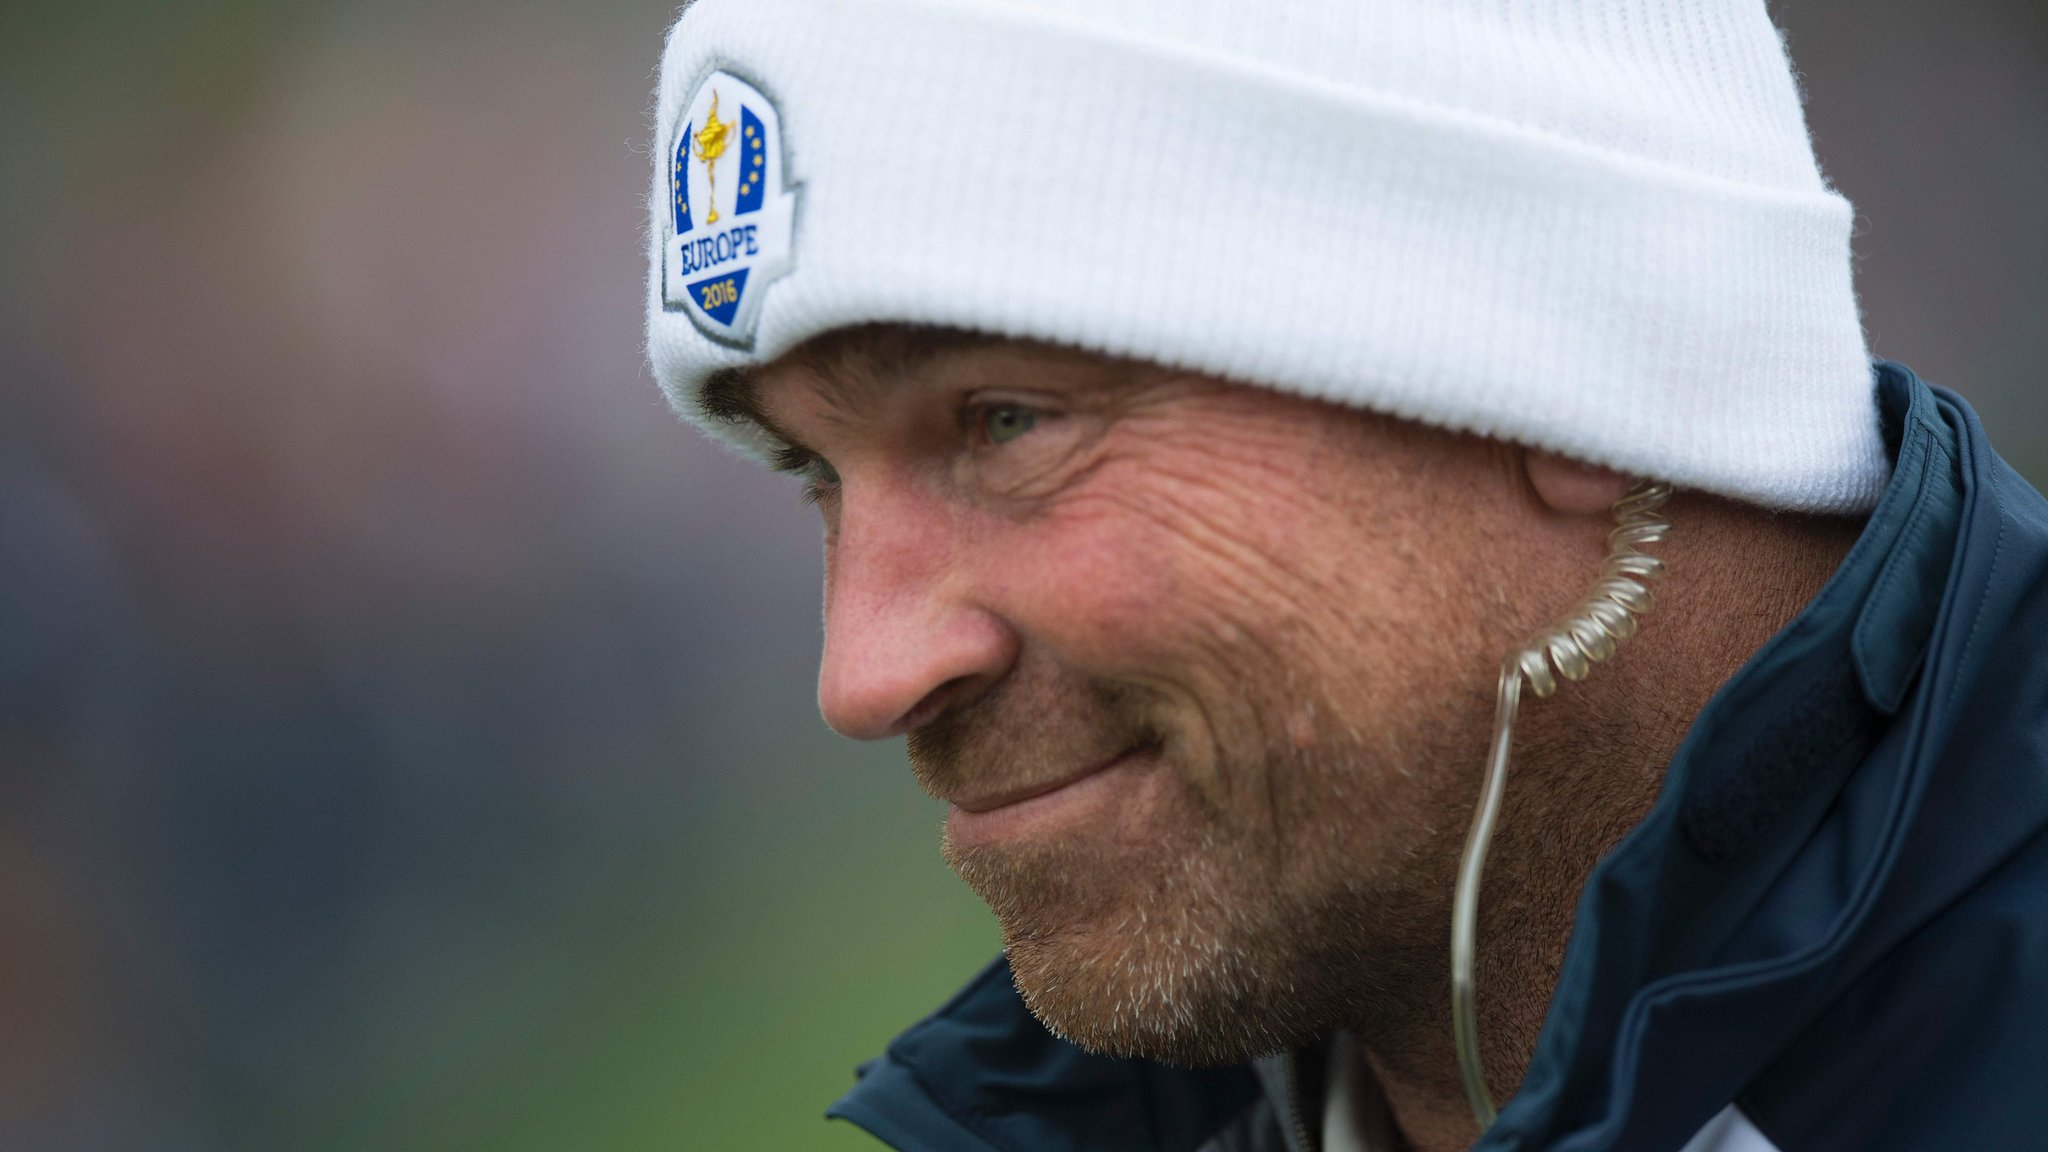 Ryder Cup: Europe will review selection policy - Thomas Bjorn